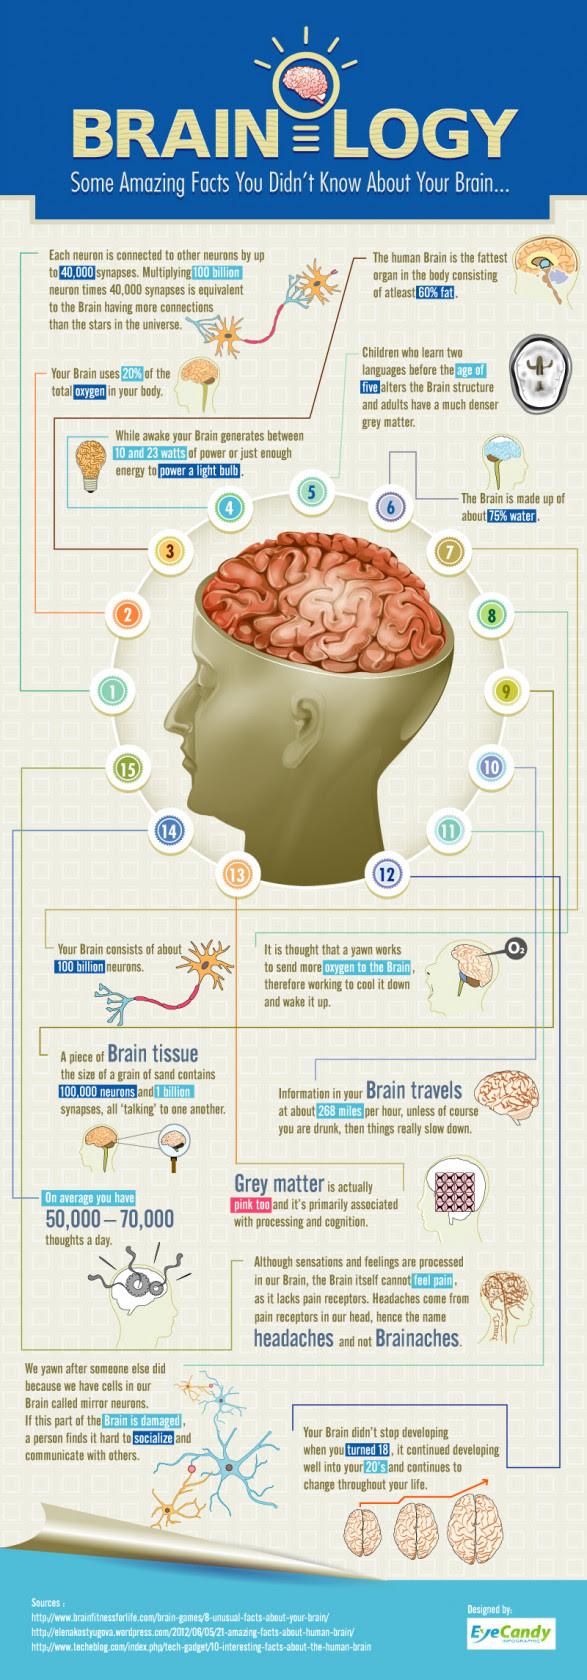 Brainology -Some Amazing Facts you didn